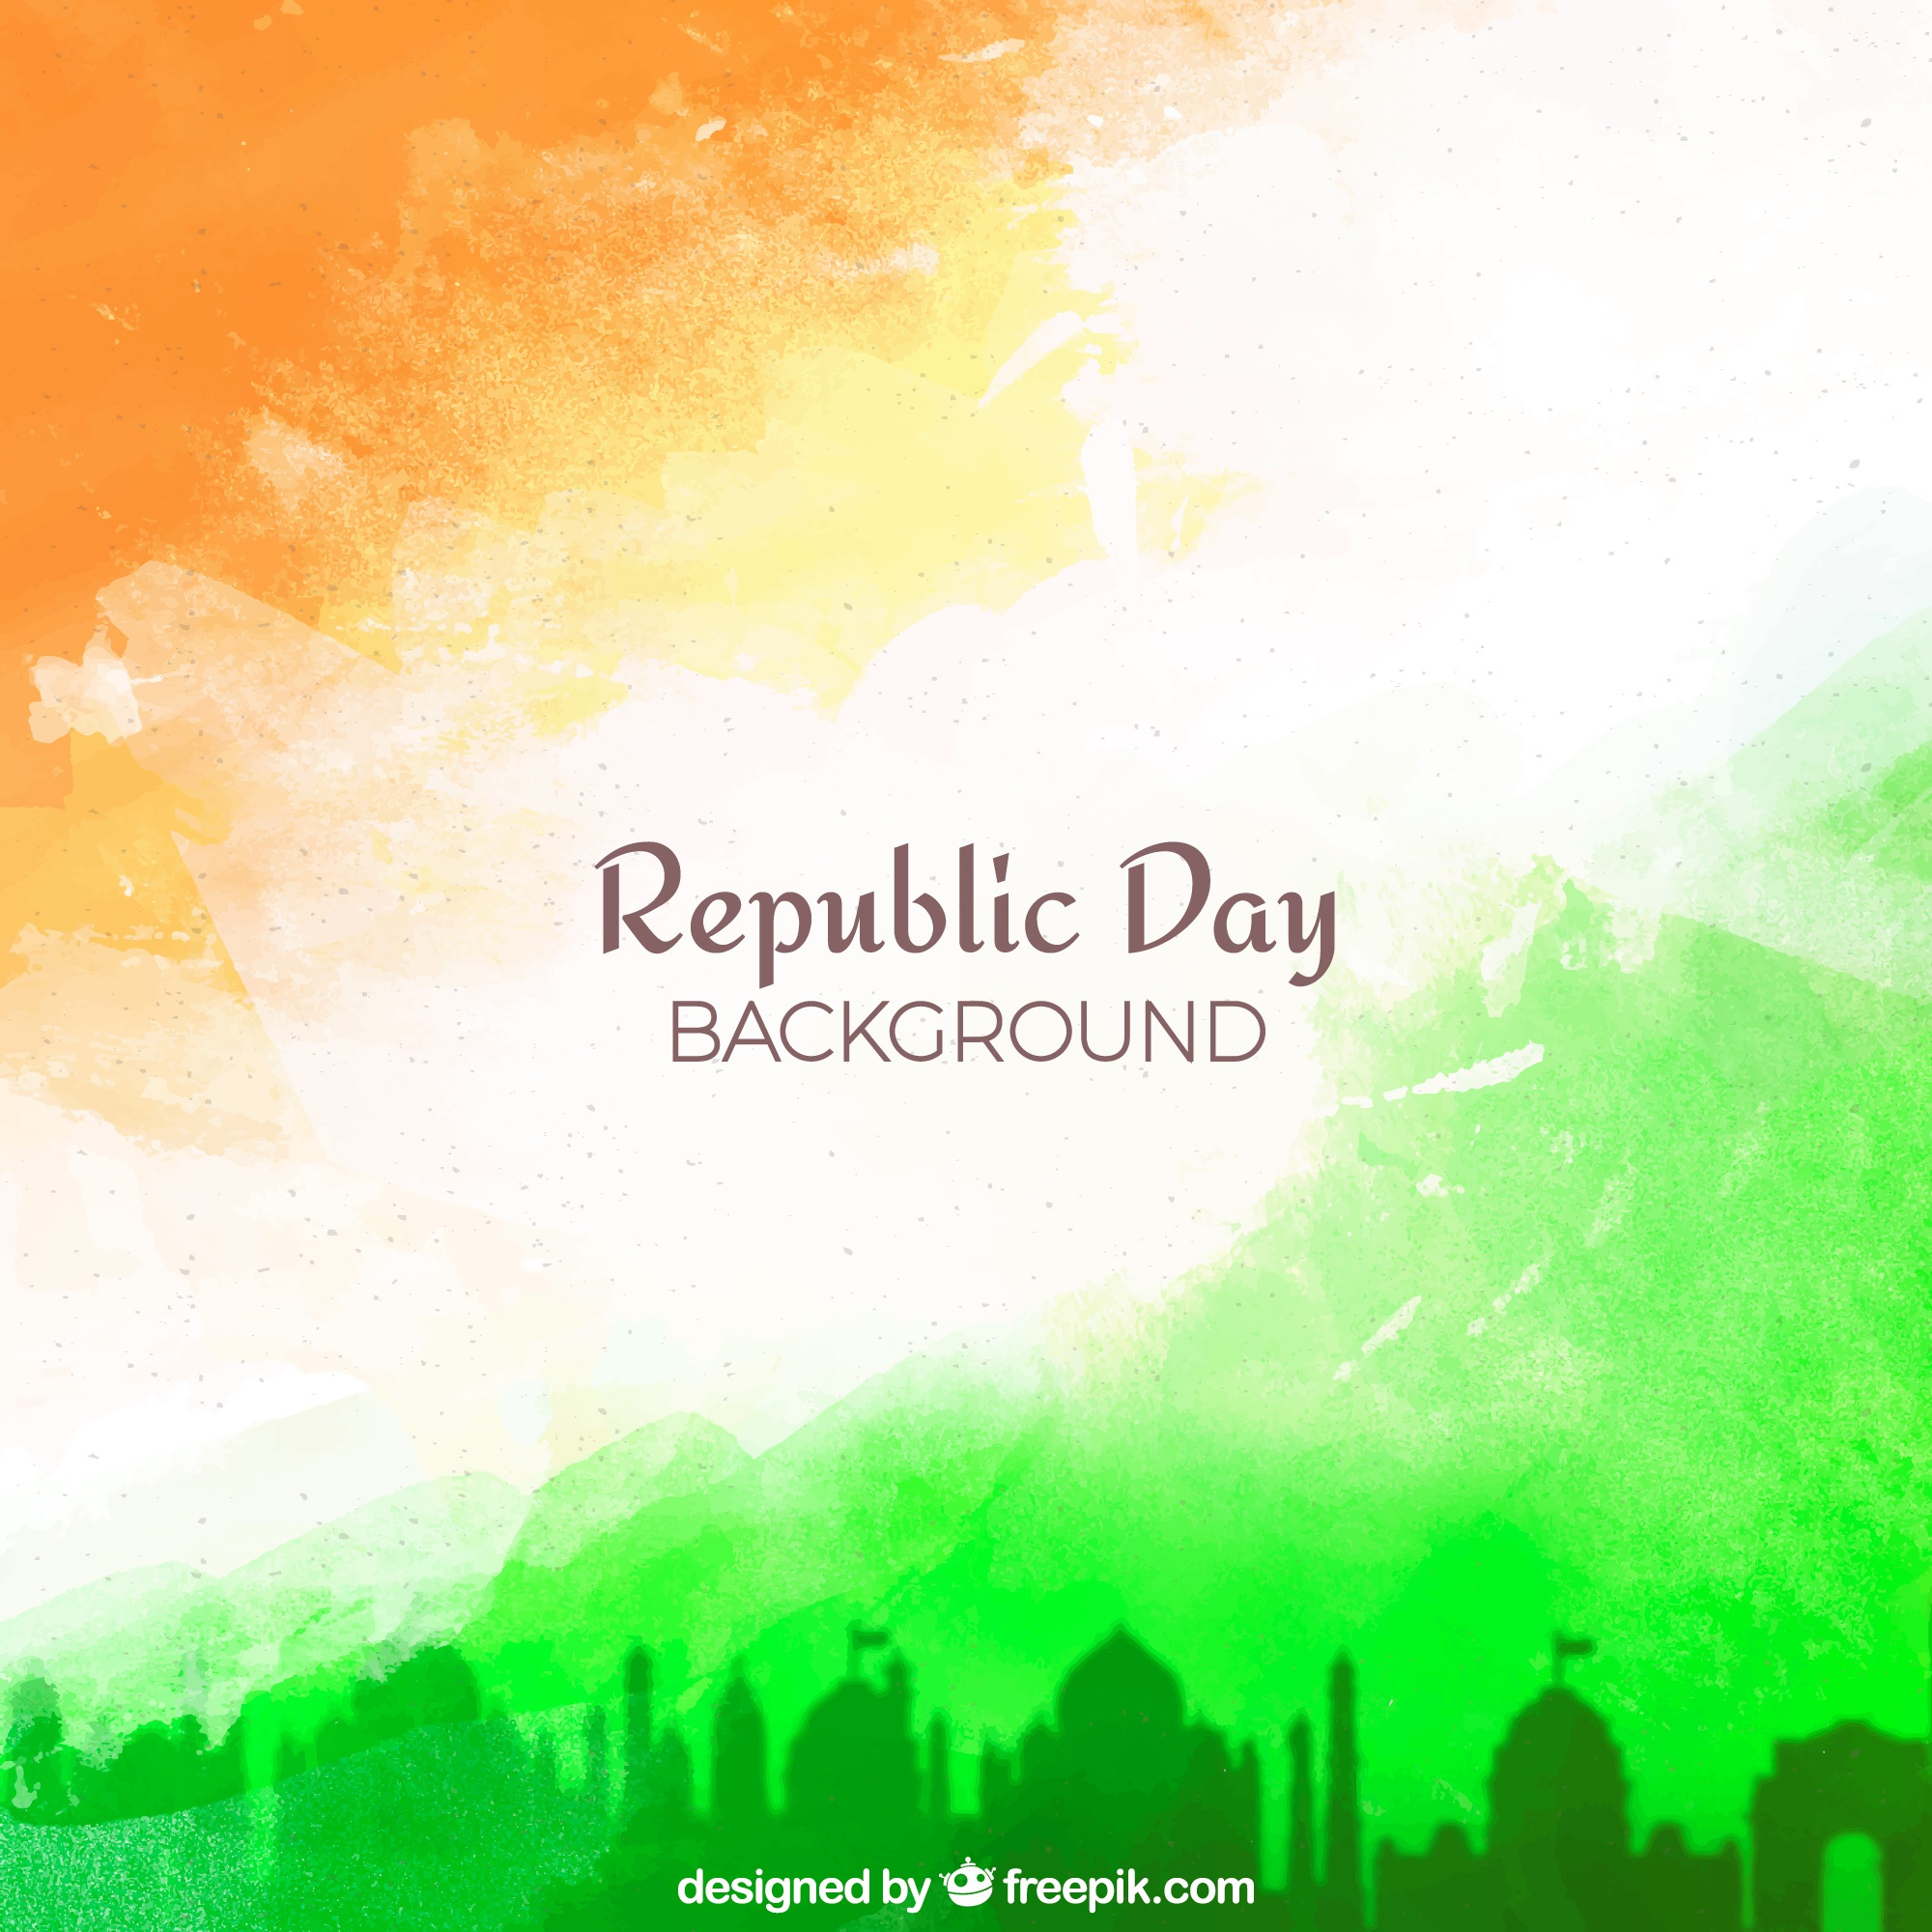 Republic day background with watercolor